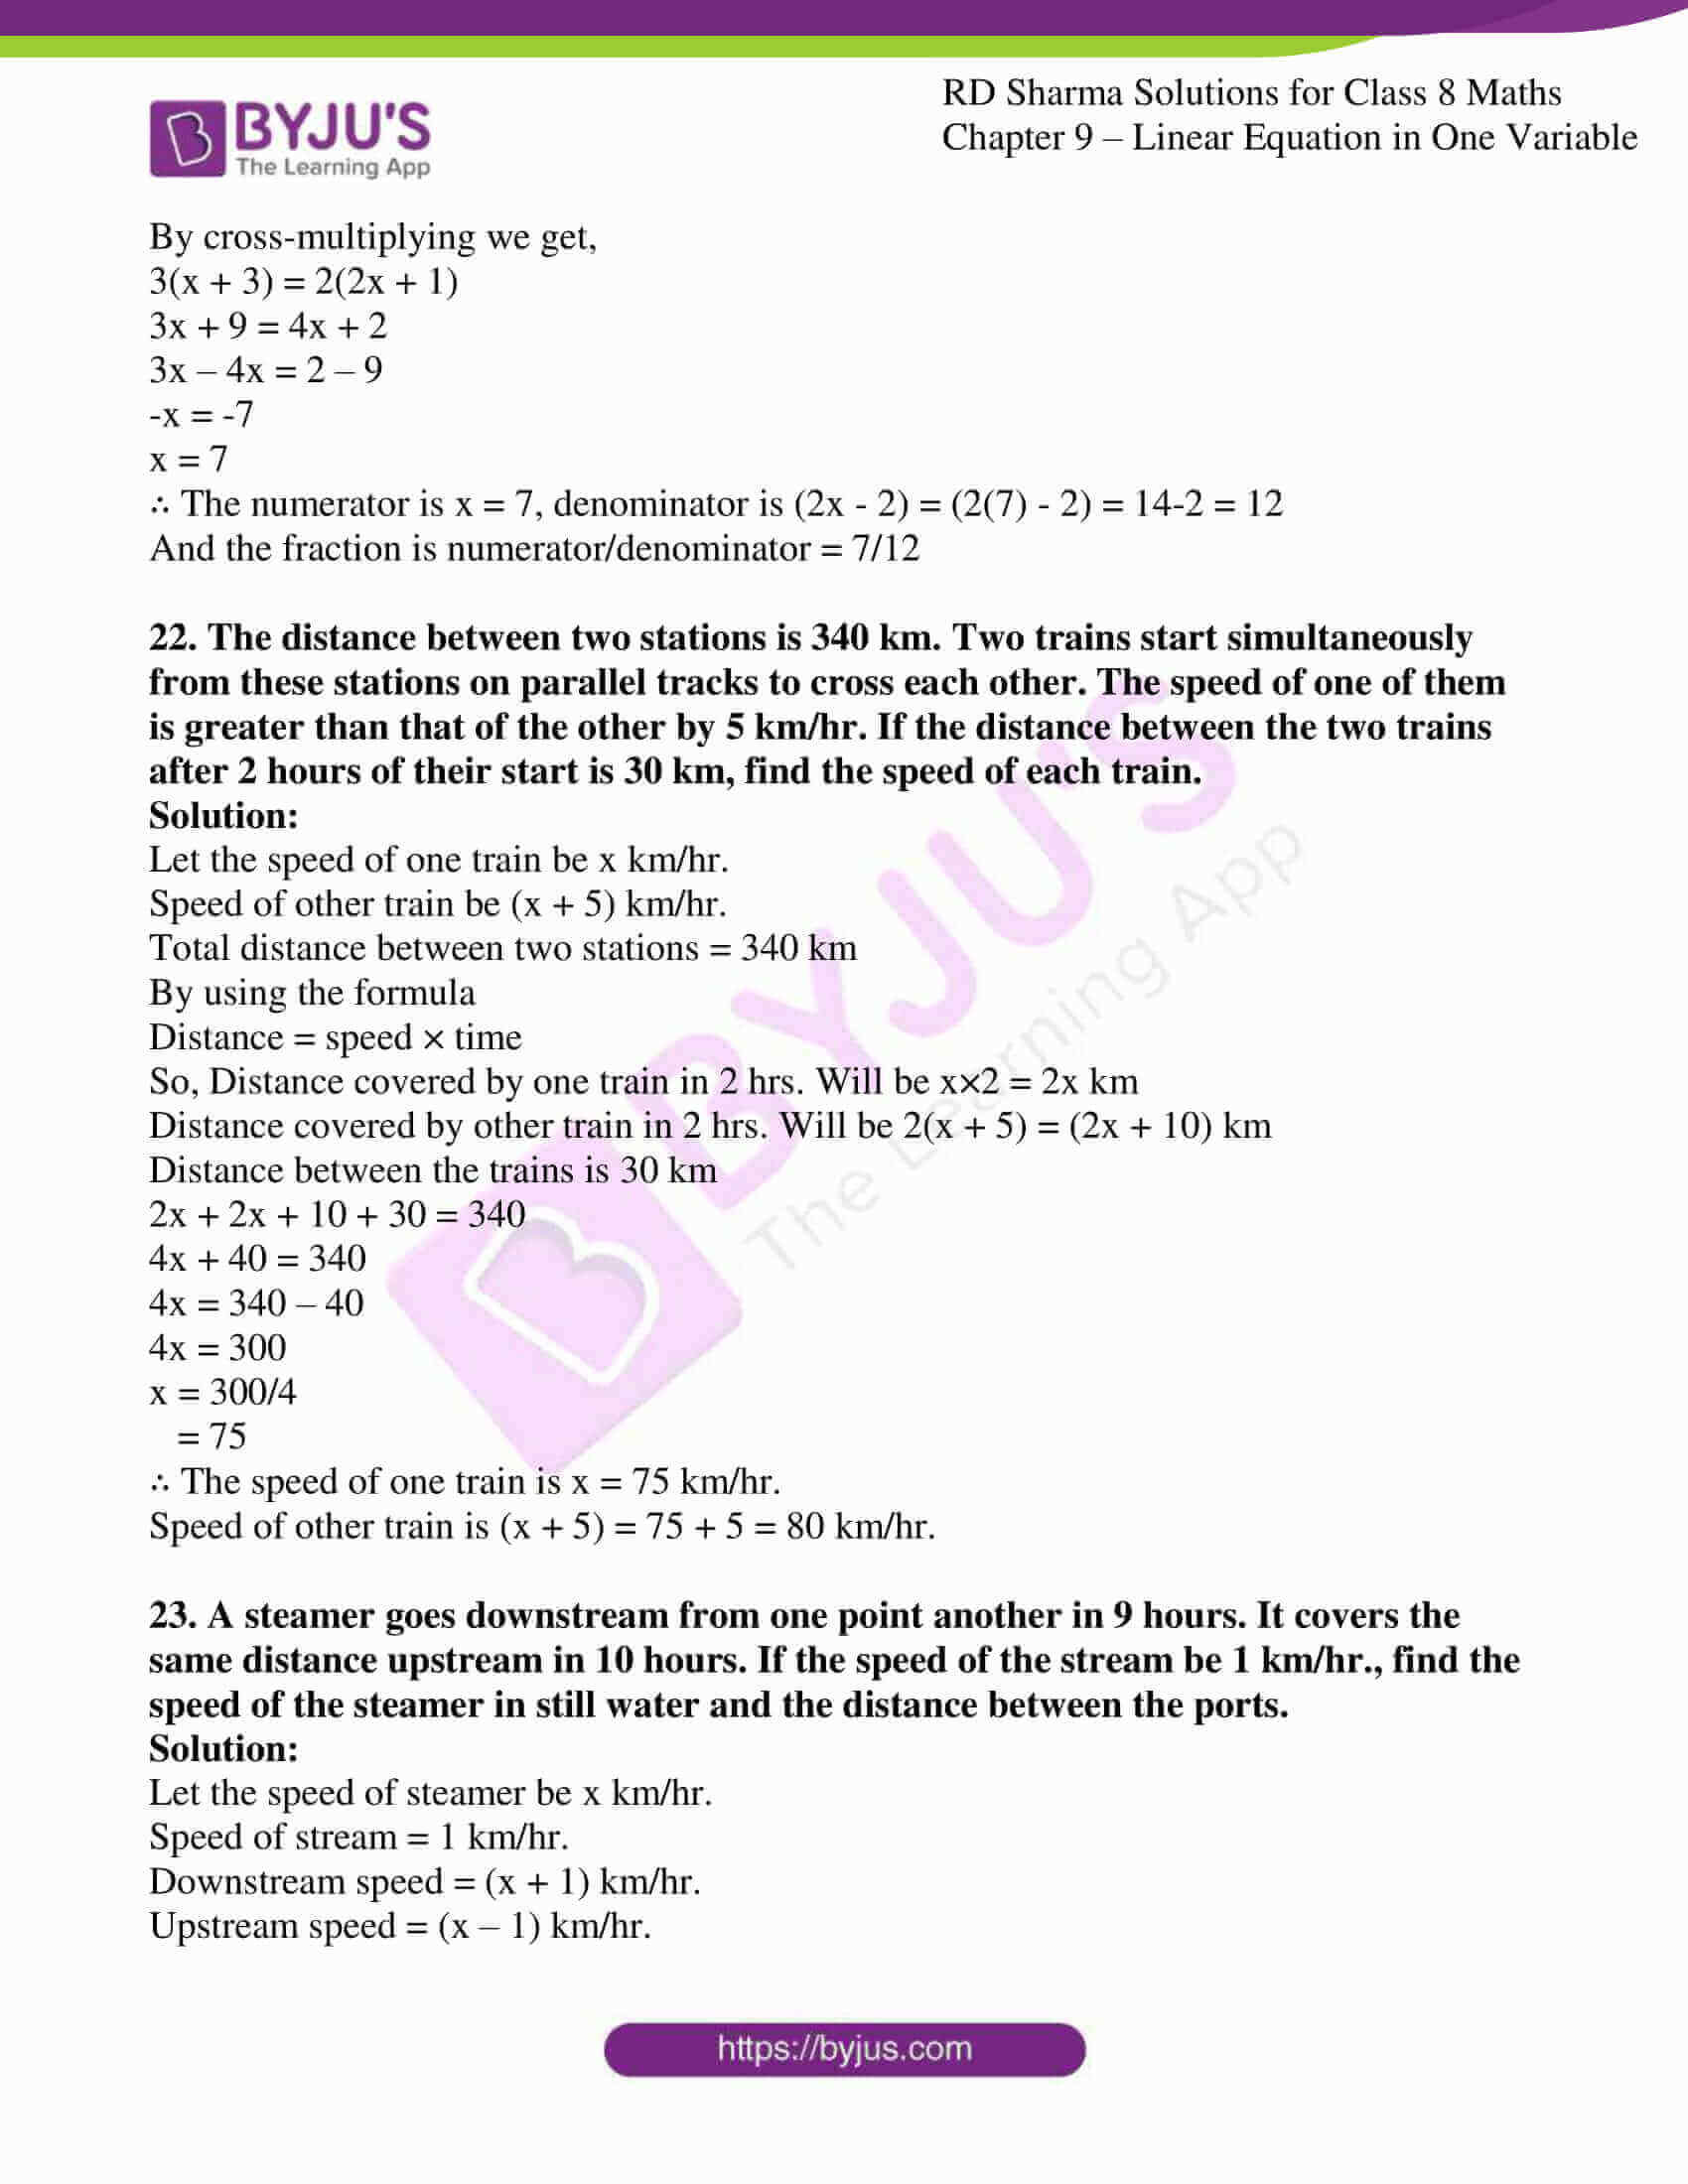 rd sharma class 8 maths chapter 9 exercise 4 10